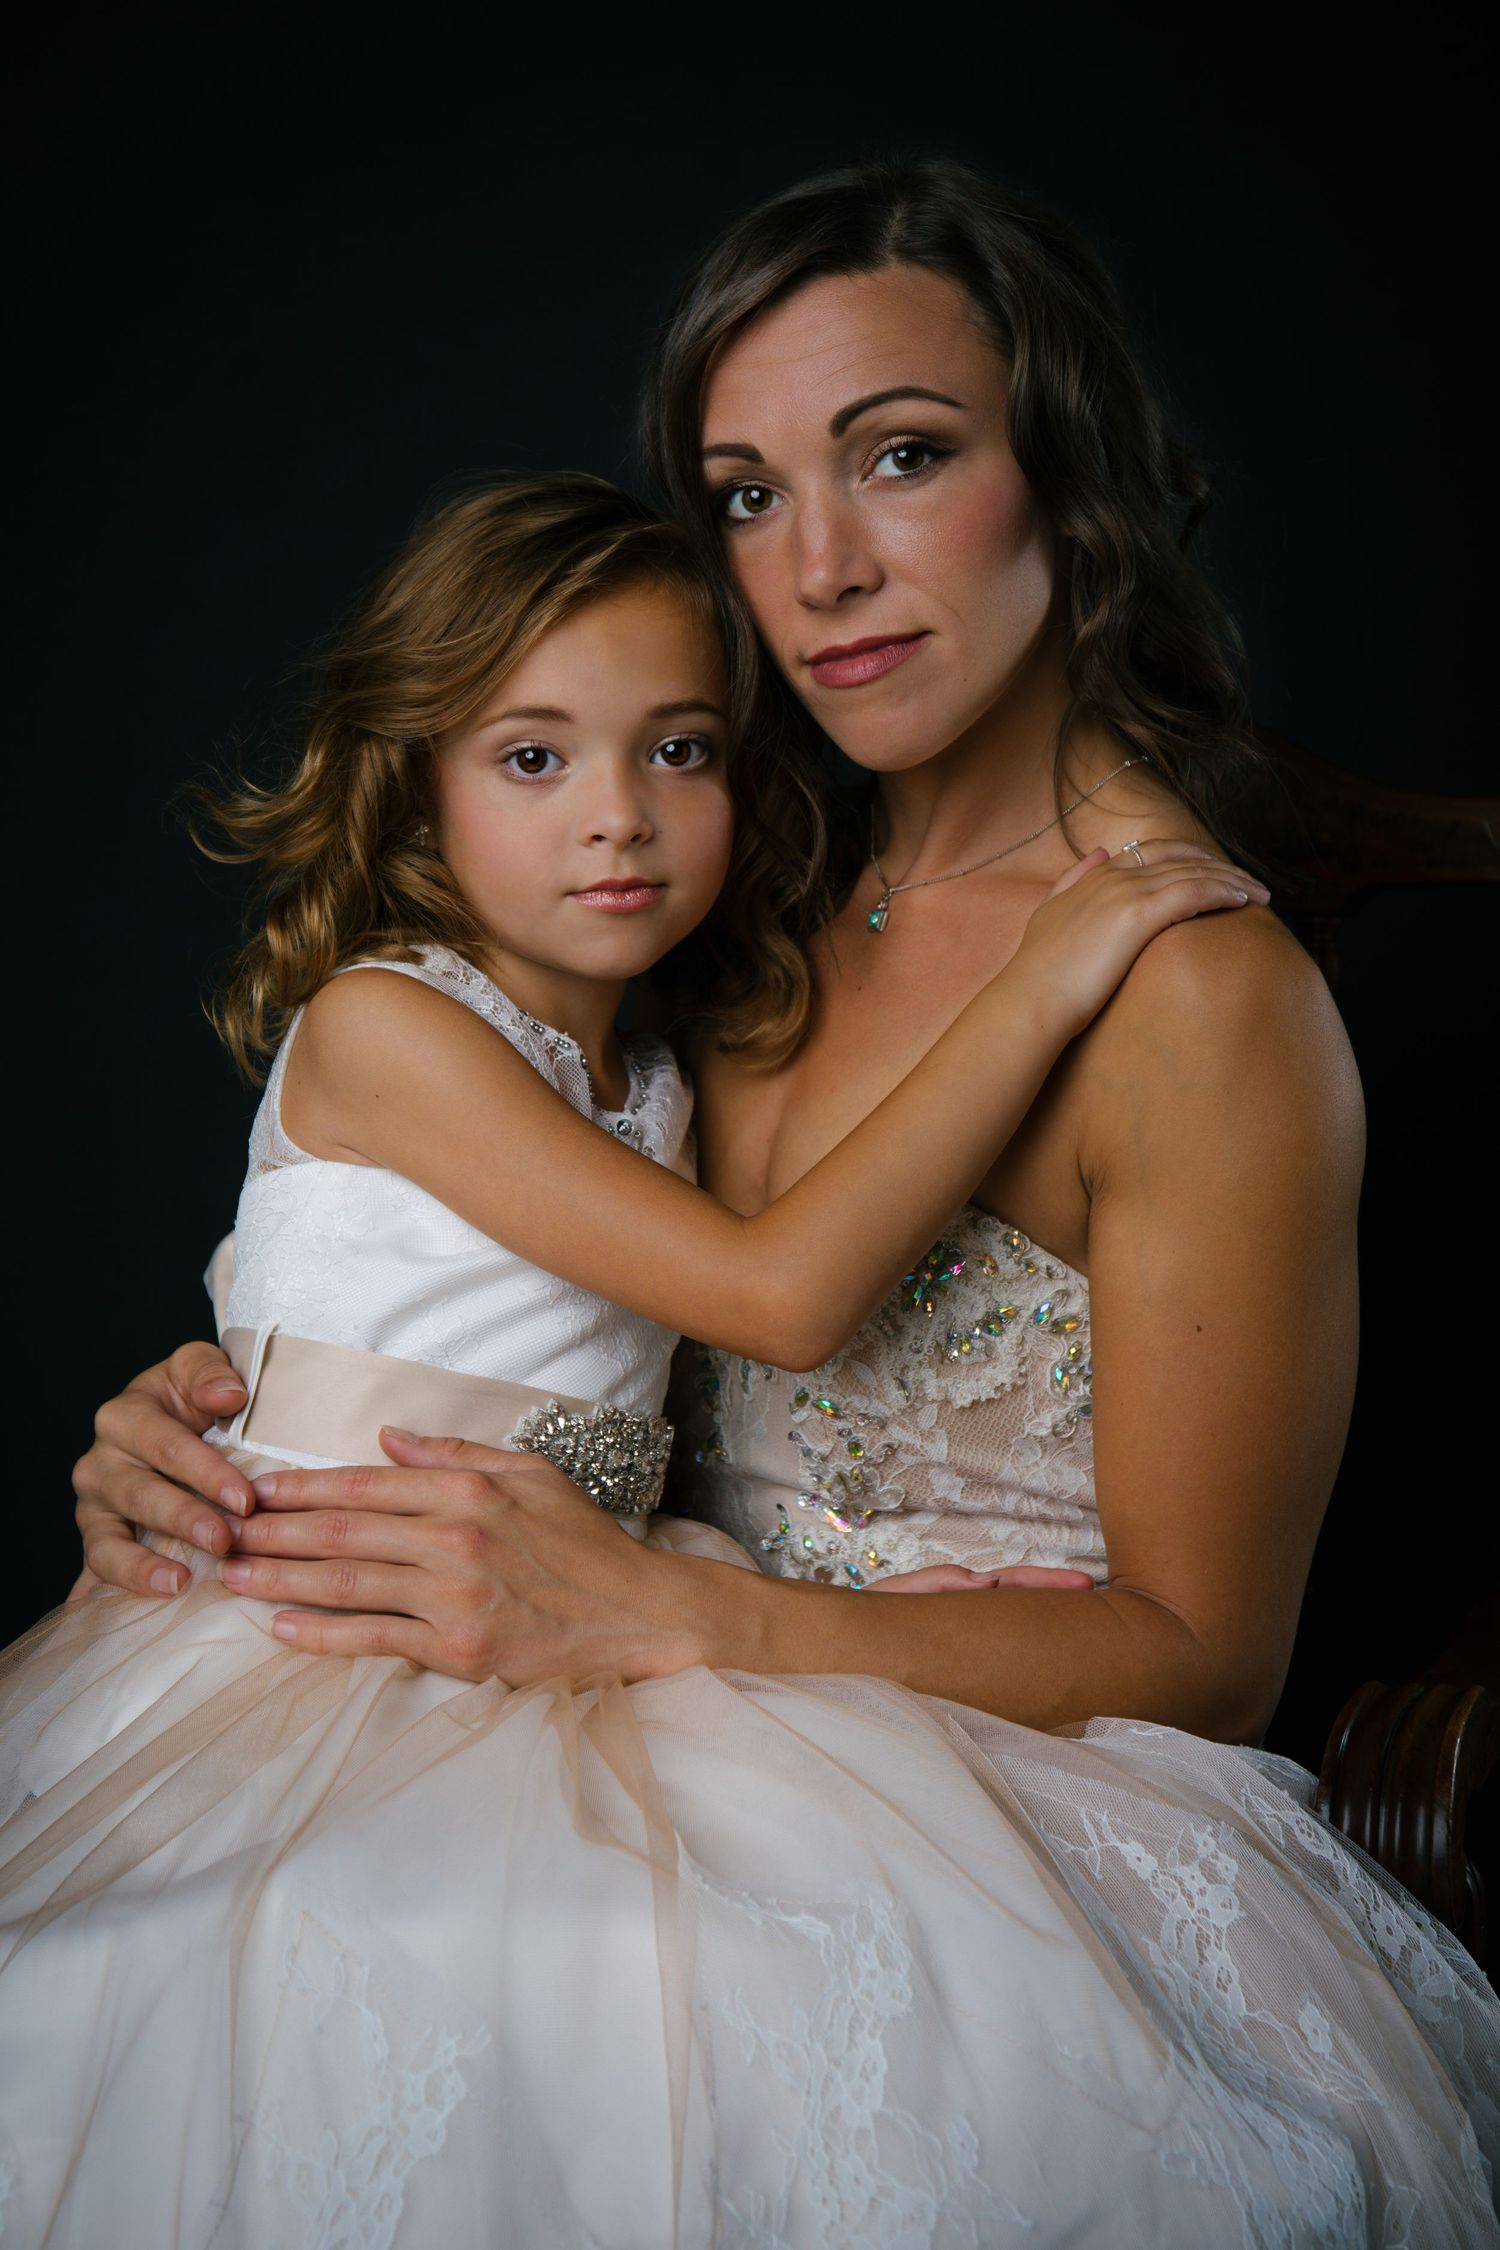 Mother Daughter Portrait, Glamour Portrait, Fine Art Portrait